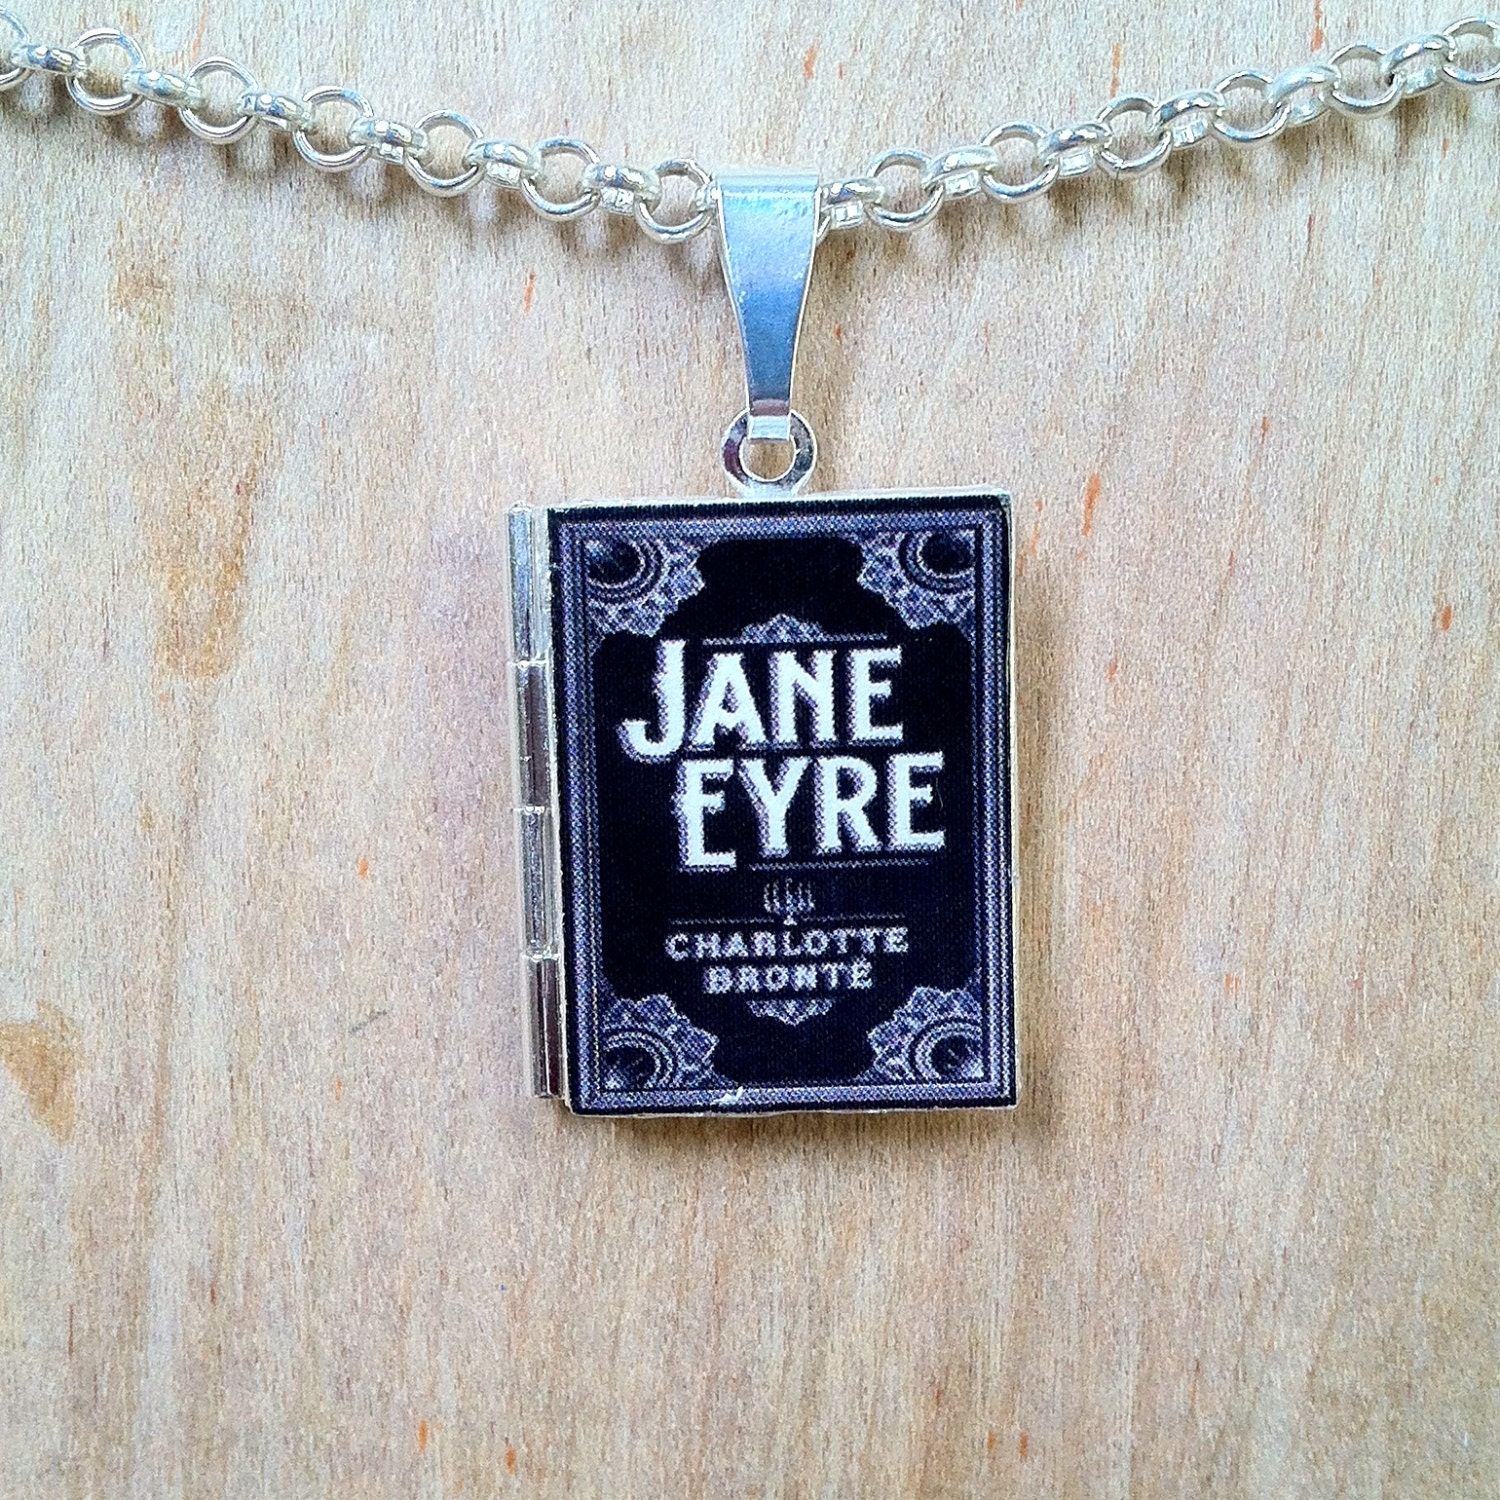 Charlotte Brontë - Jane Eyre (2 cover options) - Literary Locket